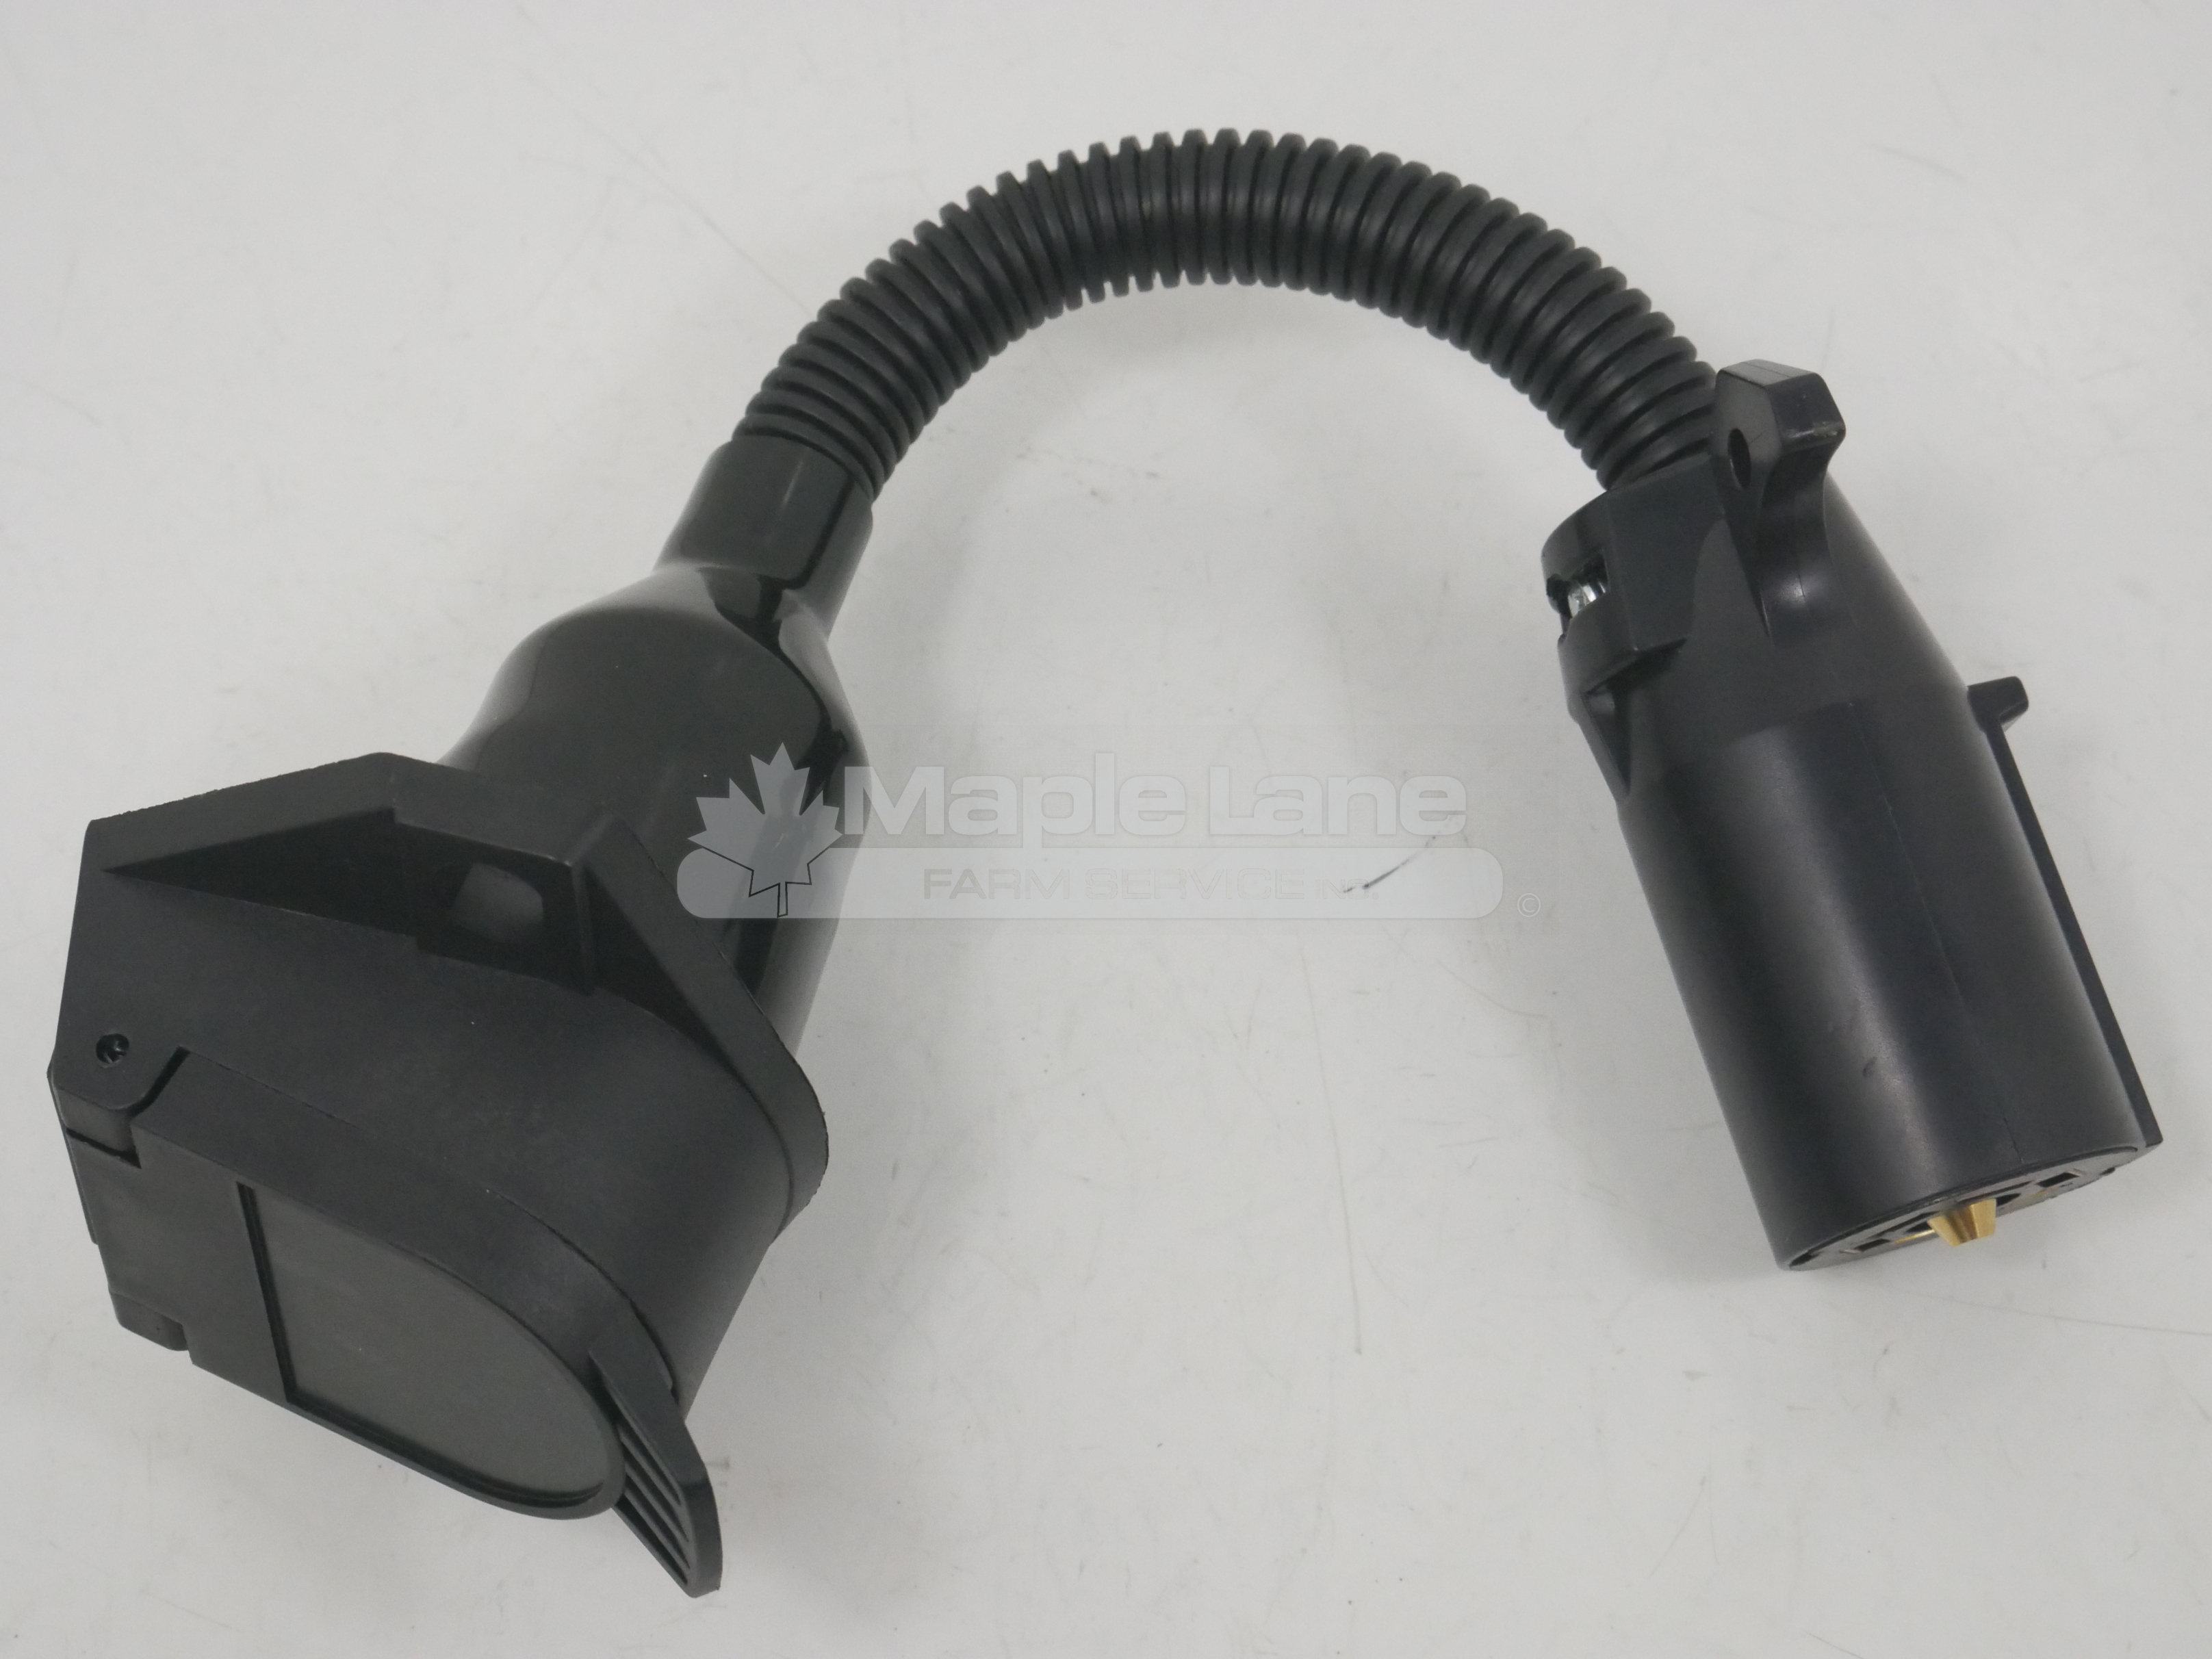 LP-101298 Adapter Cable